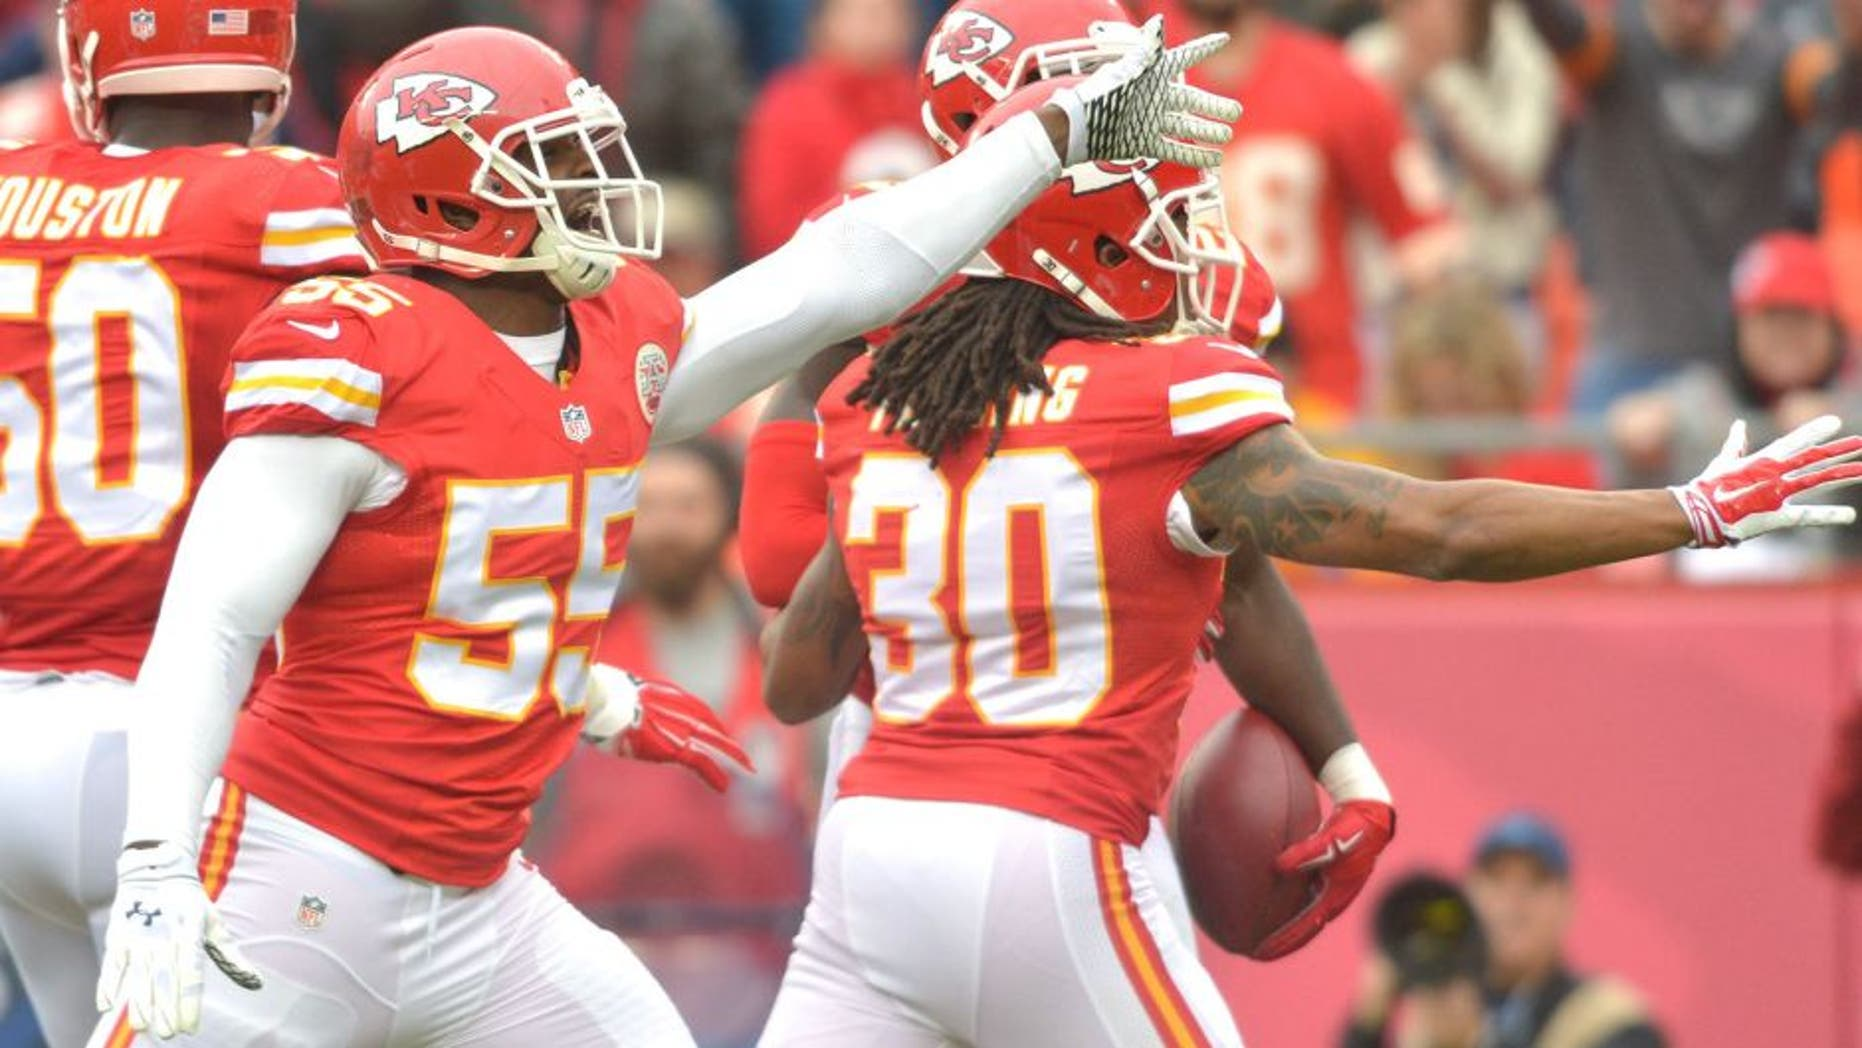 Dec 14, 2014; Kansas City, MO, USA; Kansas City Chiefs linebacker Dee Ford (55) and outside linebacker Justin Houston (50) celebrate after a play during the first half against the Oakland Raiders at Arrowhead Stadium. The Chiefs won 31-13. Mandatory Credit: Denny Medley-USA TODAY Sports